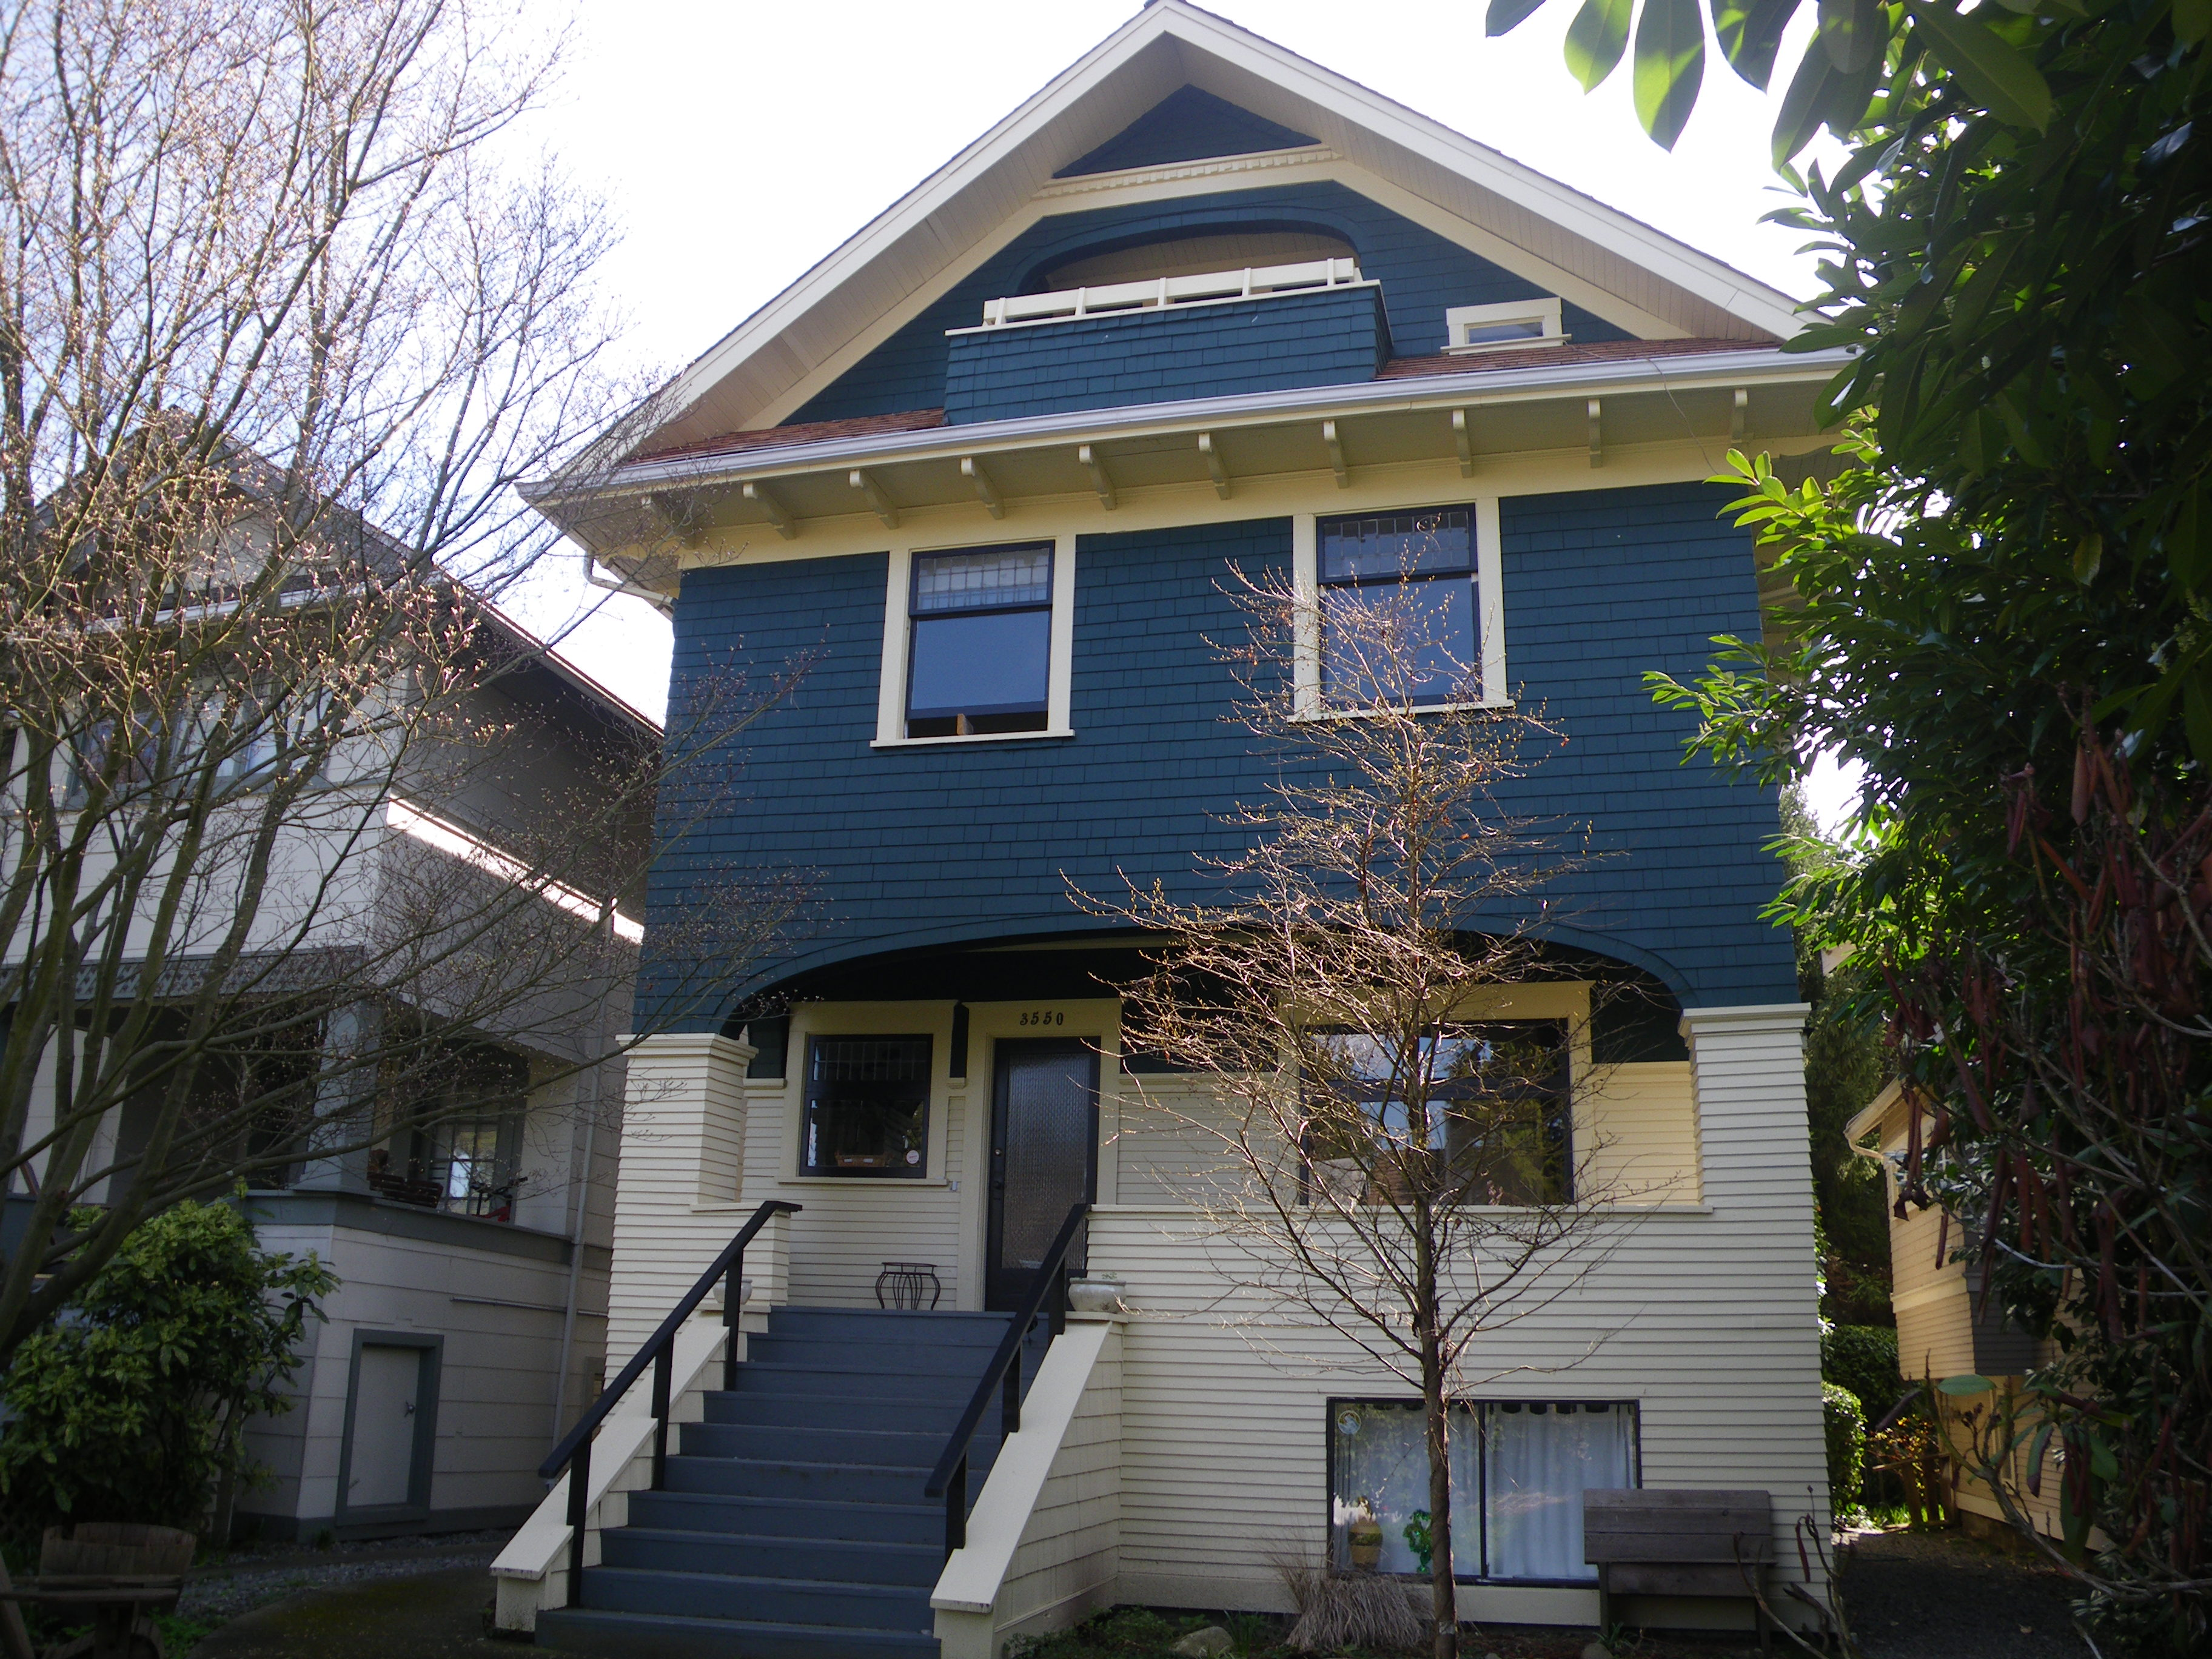 Vancouver heritage house painting exterior house painting careful painting vancouver - Heritage paint colours exterior pict ...